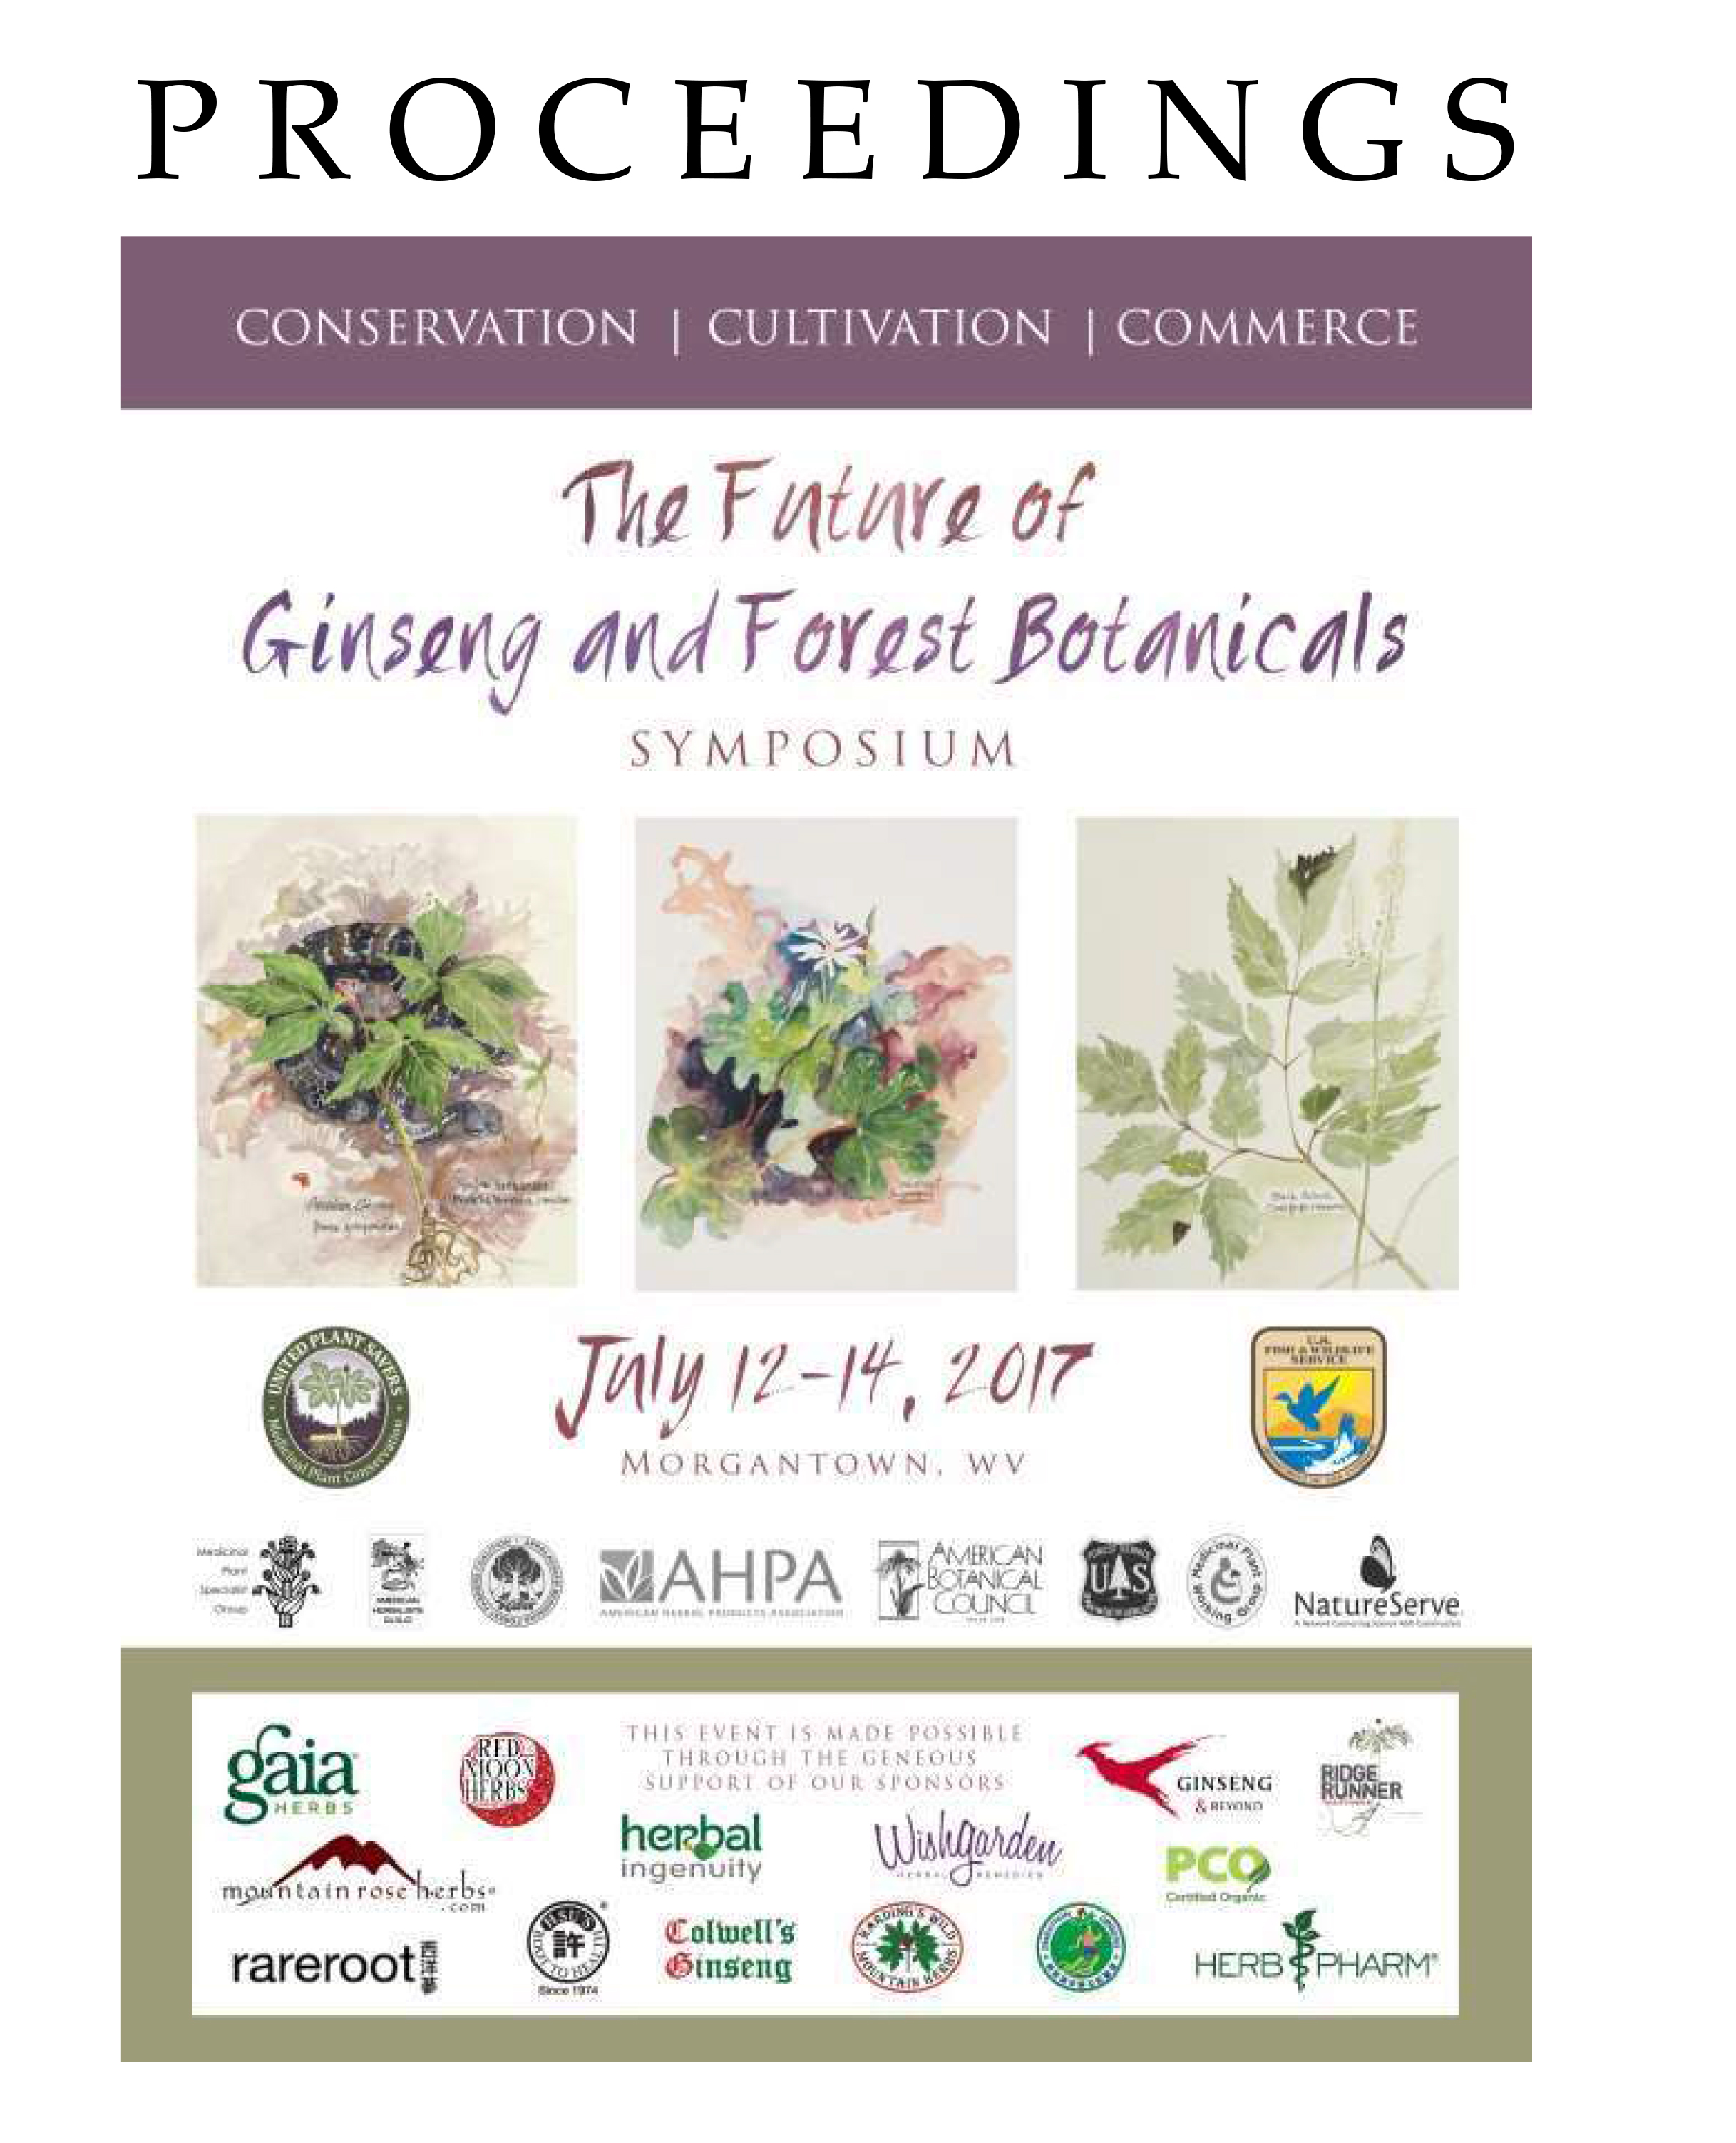 Future of ginseng symposium link